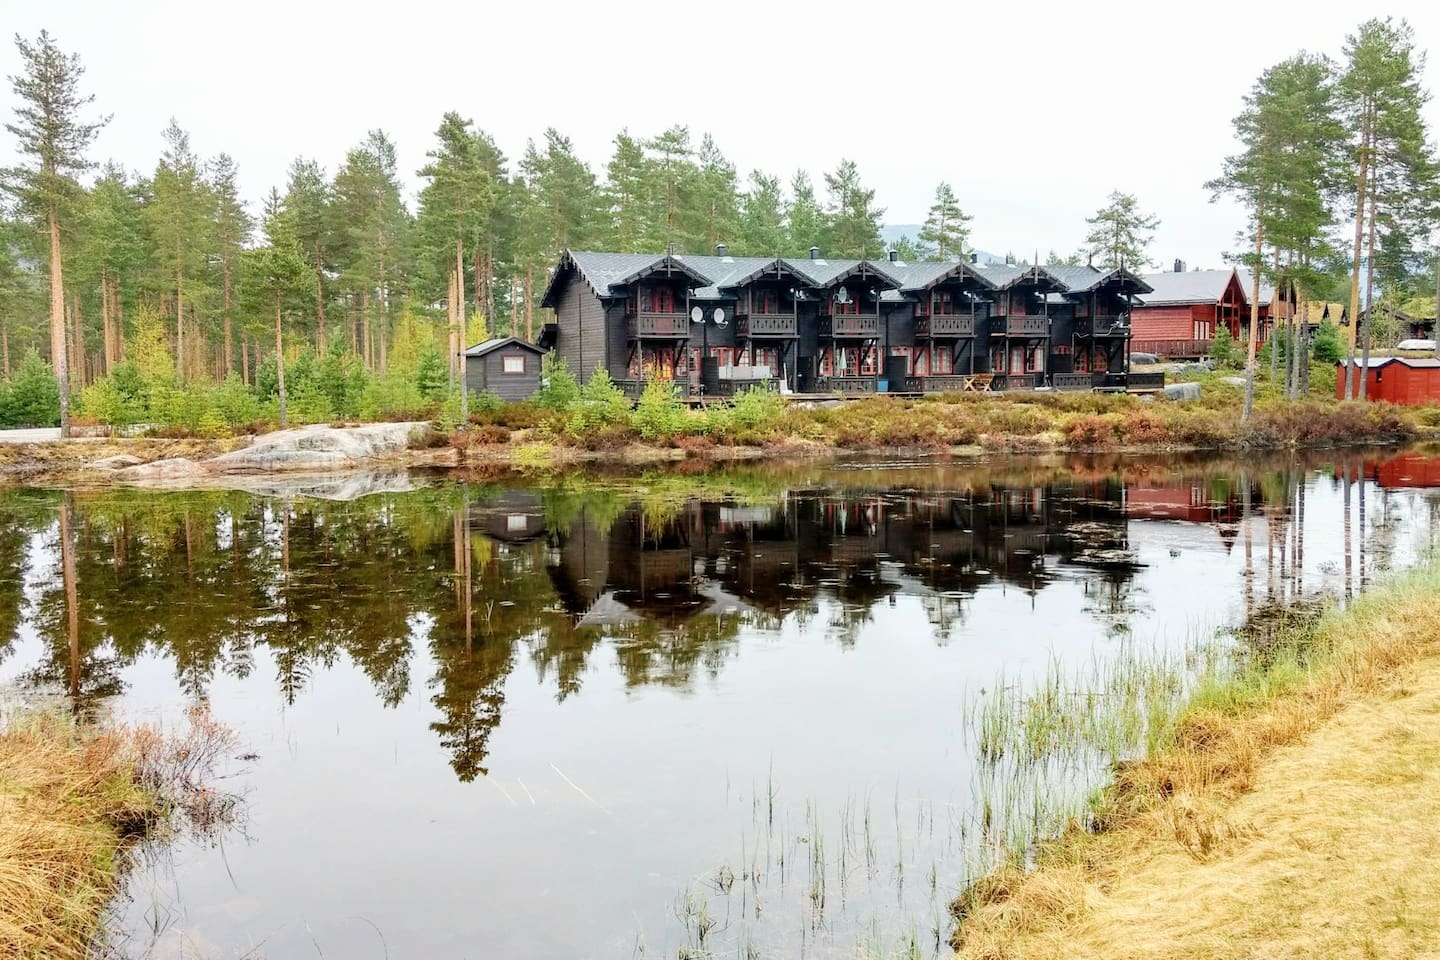 """""""We had a very nice stay at Henrik's place. It was clean and cosy. I would definitely recommend it."""" - Jean Marc *****, August 2017"""